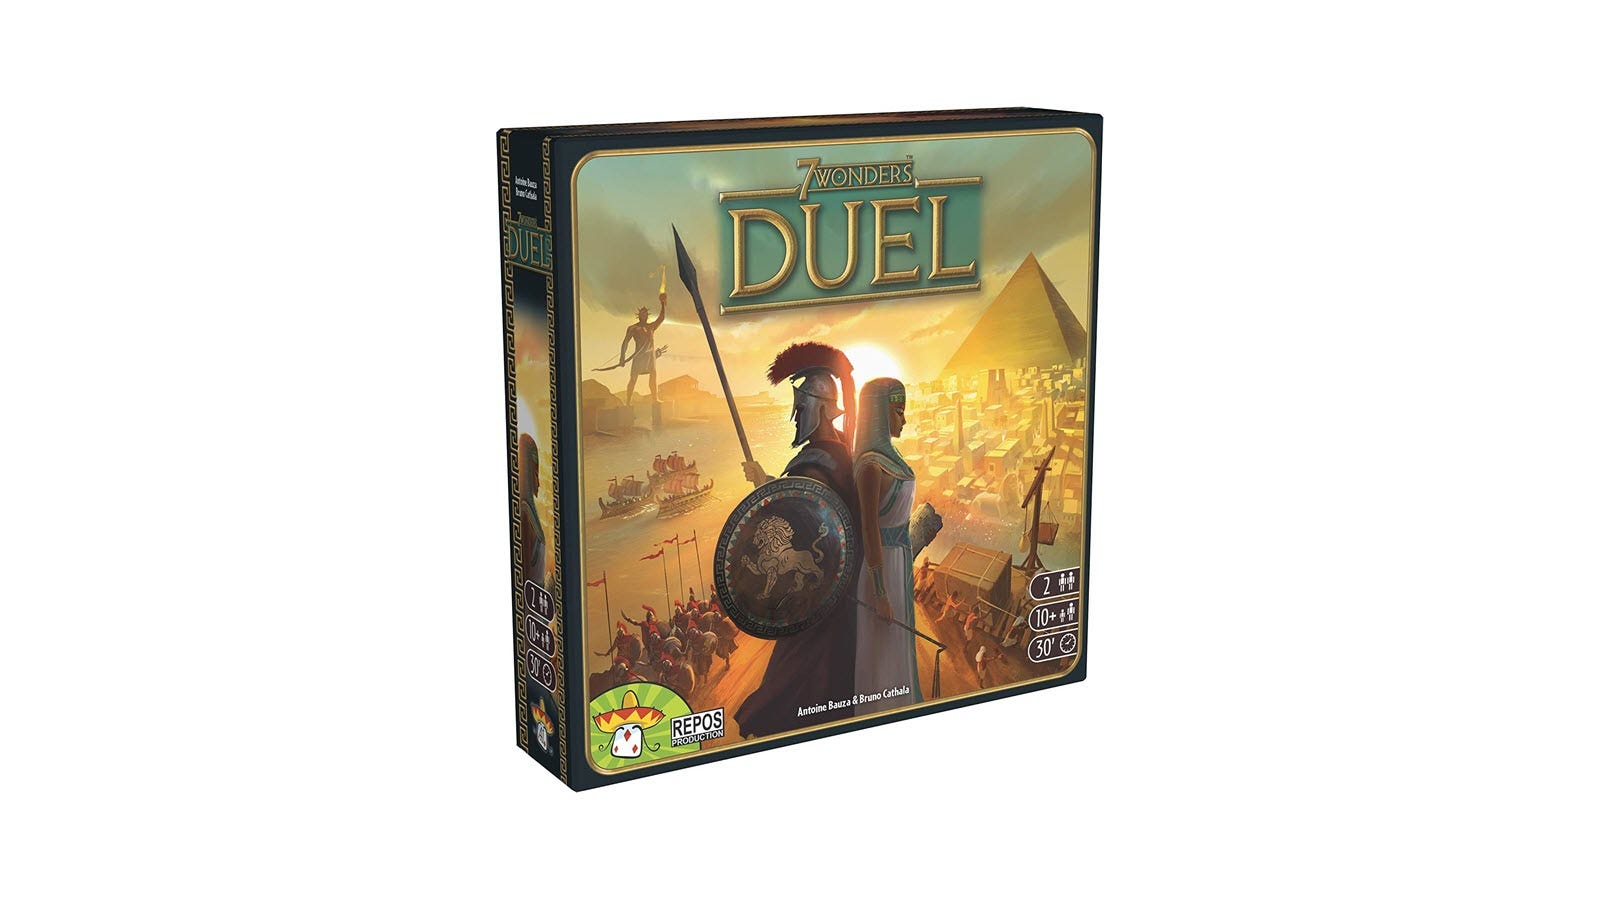 The 7 Wonders: Duel box, featuring a man and woman standing back-to-back.